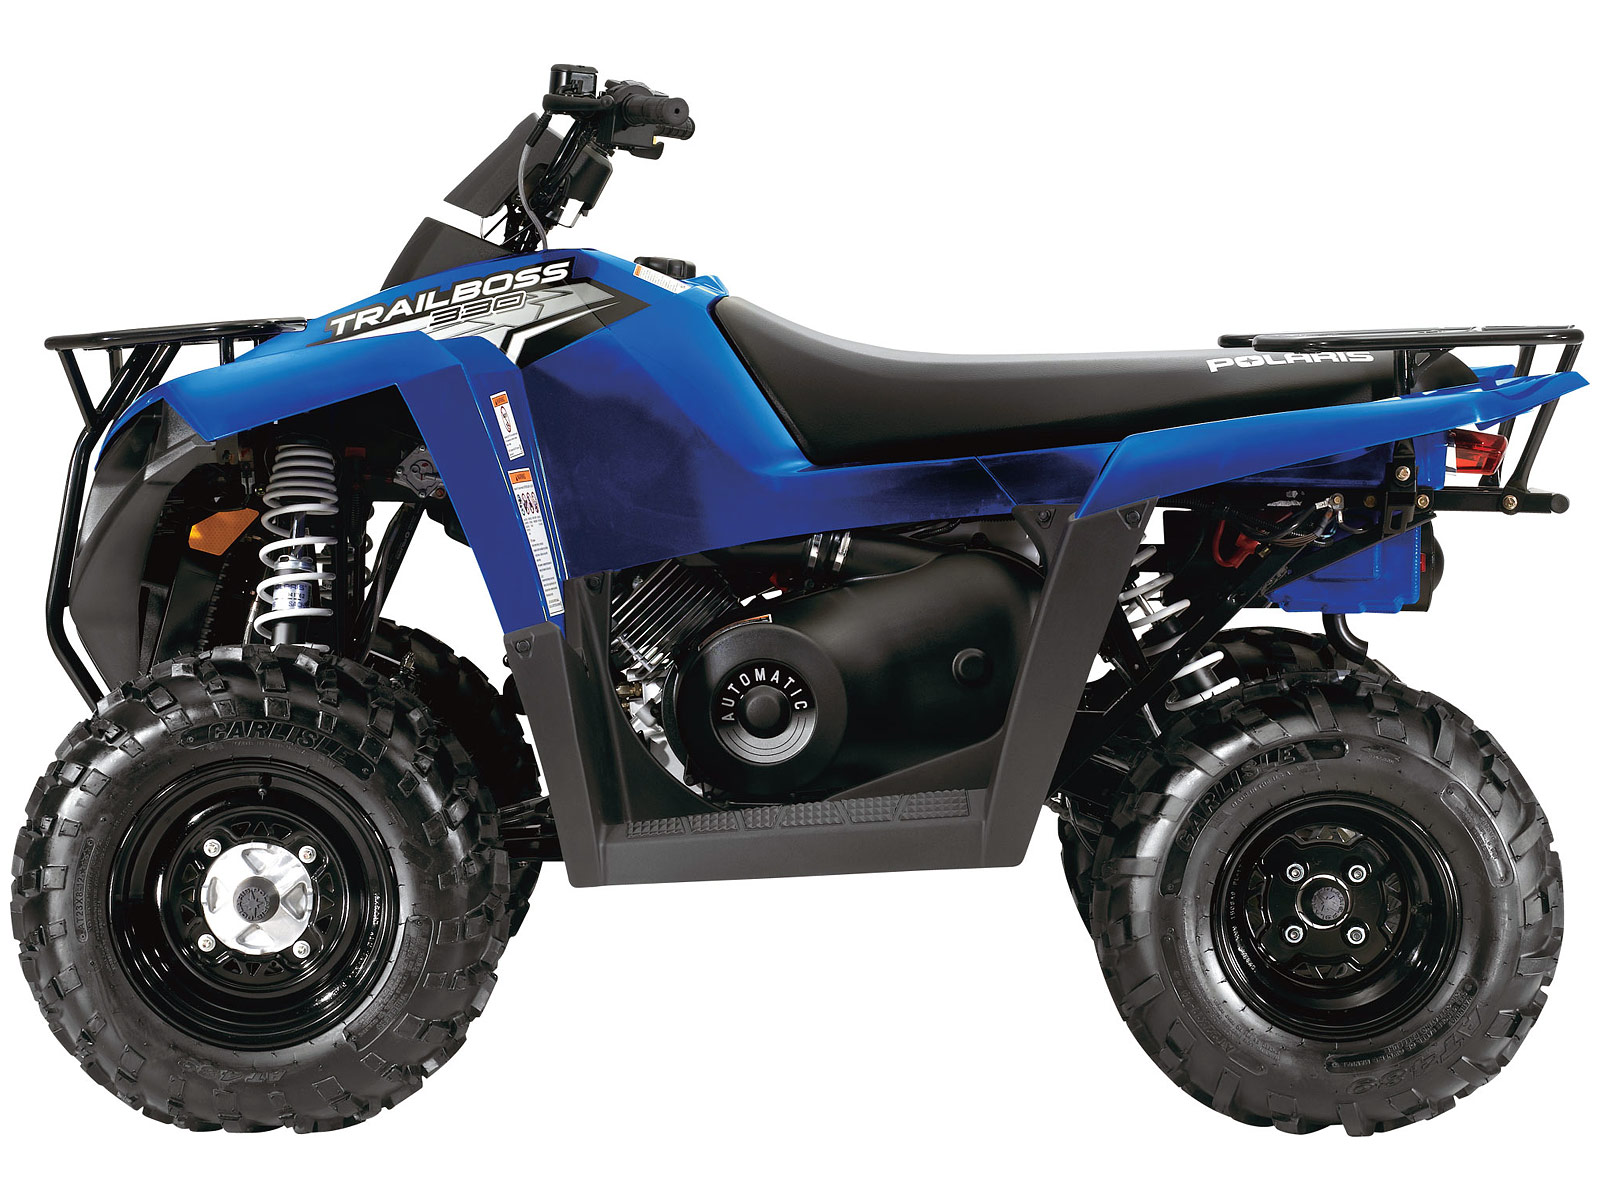 http://3.bp.blogspot.com/-sa4x-aazOng/Tu_imWhuHJI/AAAAAAAAK7E/Oa5Ap6cBZIY/s1600/2012-Polaris-Trail-Boss-330-ATV-wallpapers-1.jpg